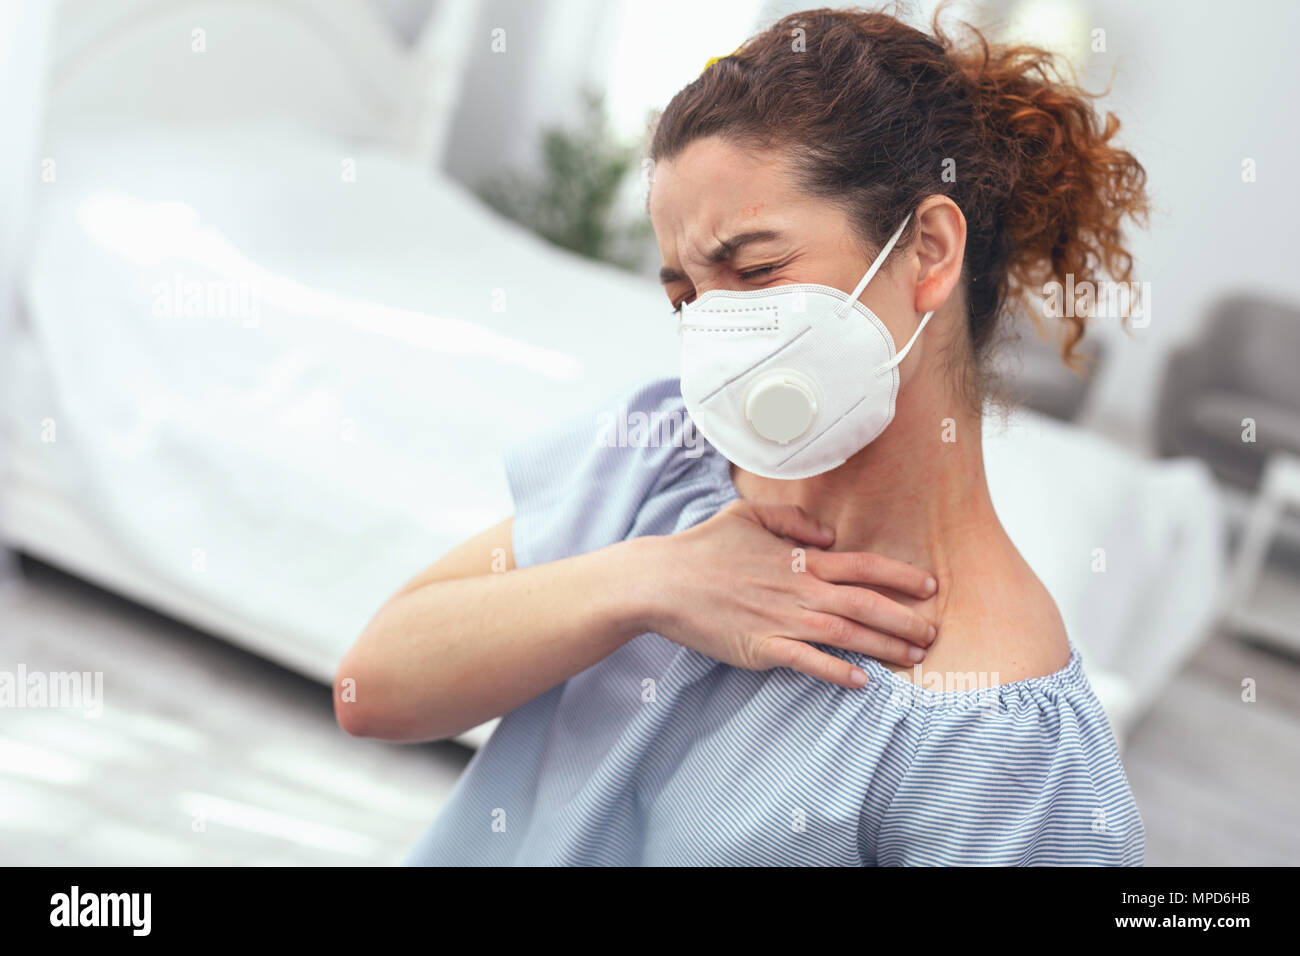 Young lady suffering from flu complications - Stock Image